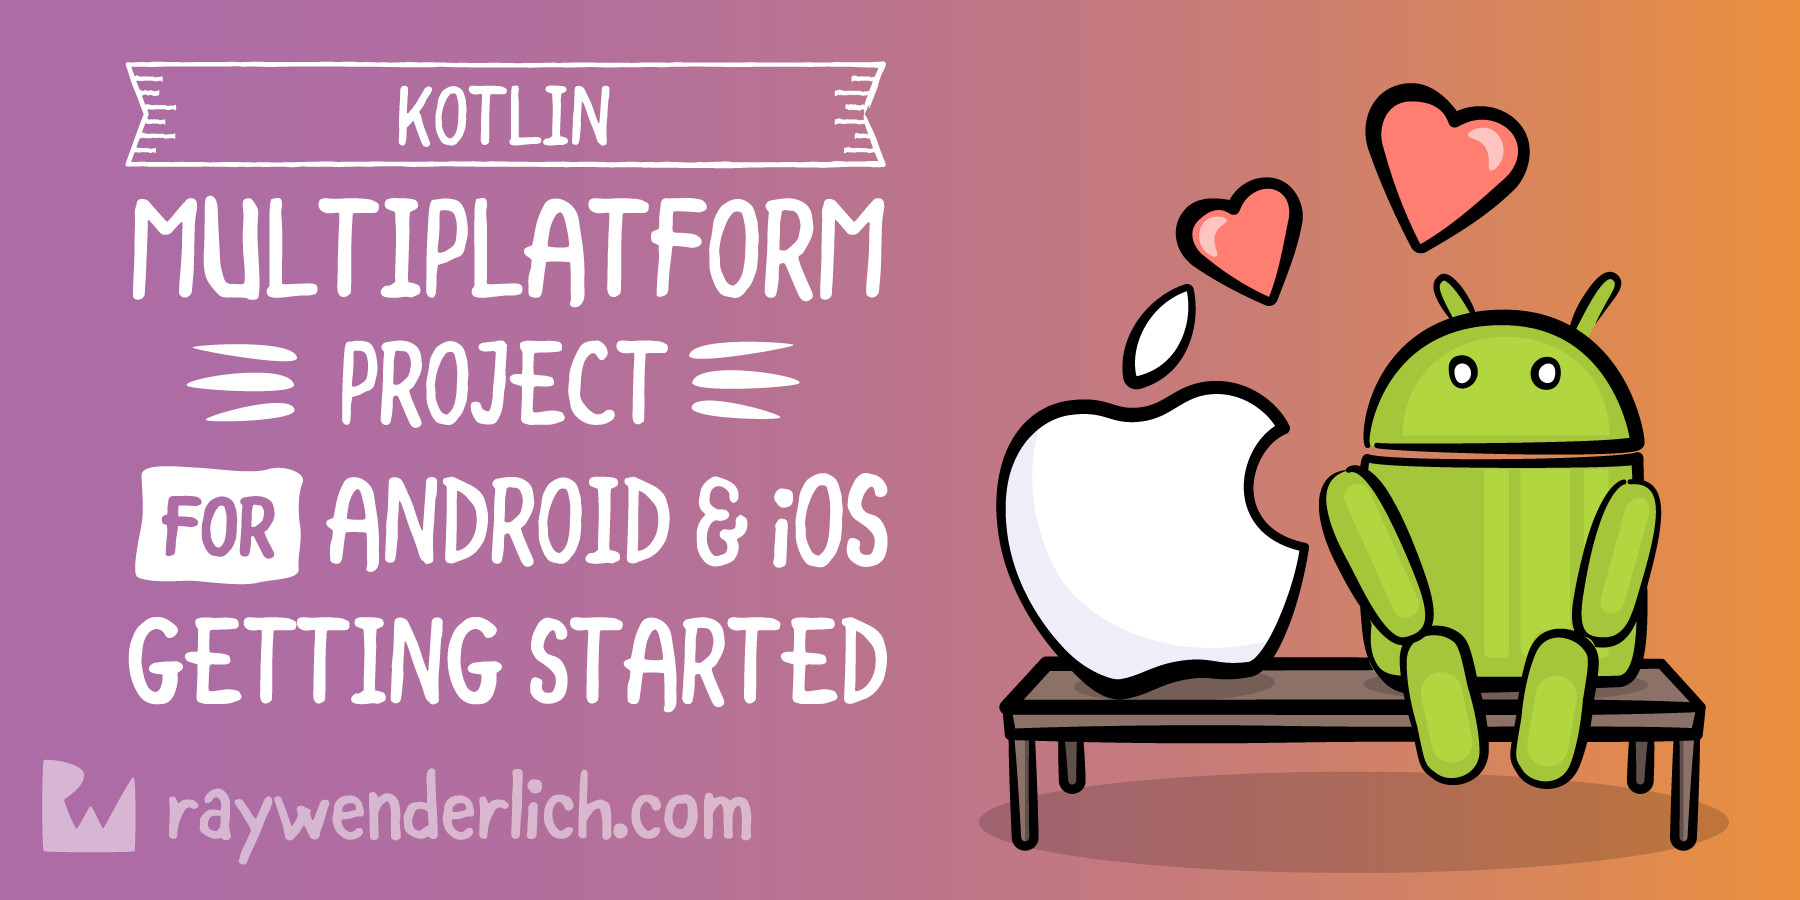 Kotlin Multiplatform Project for Android and iOS: Getting